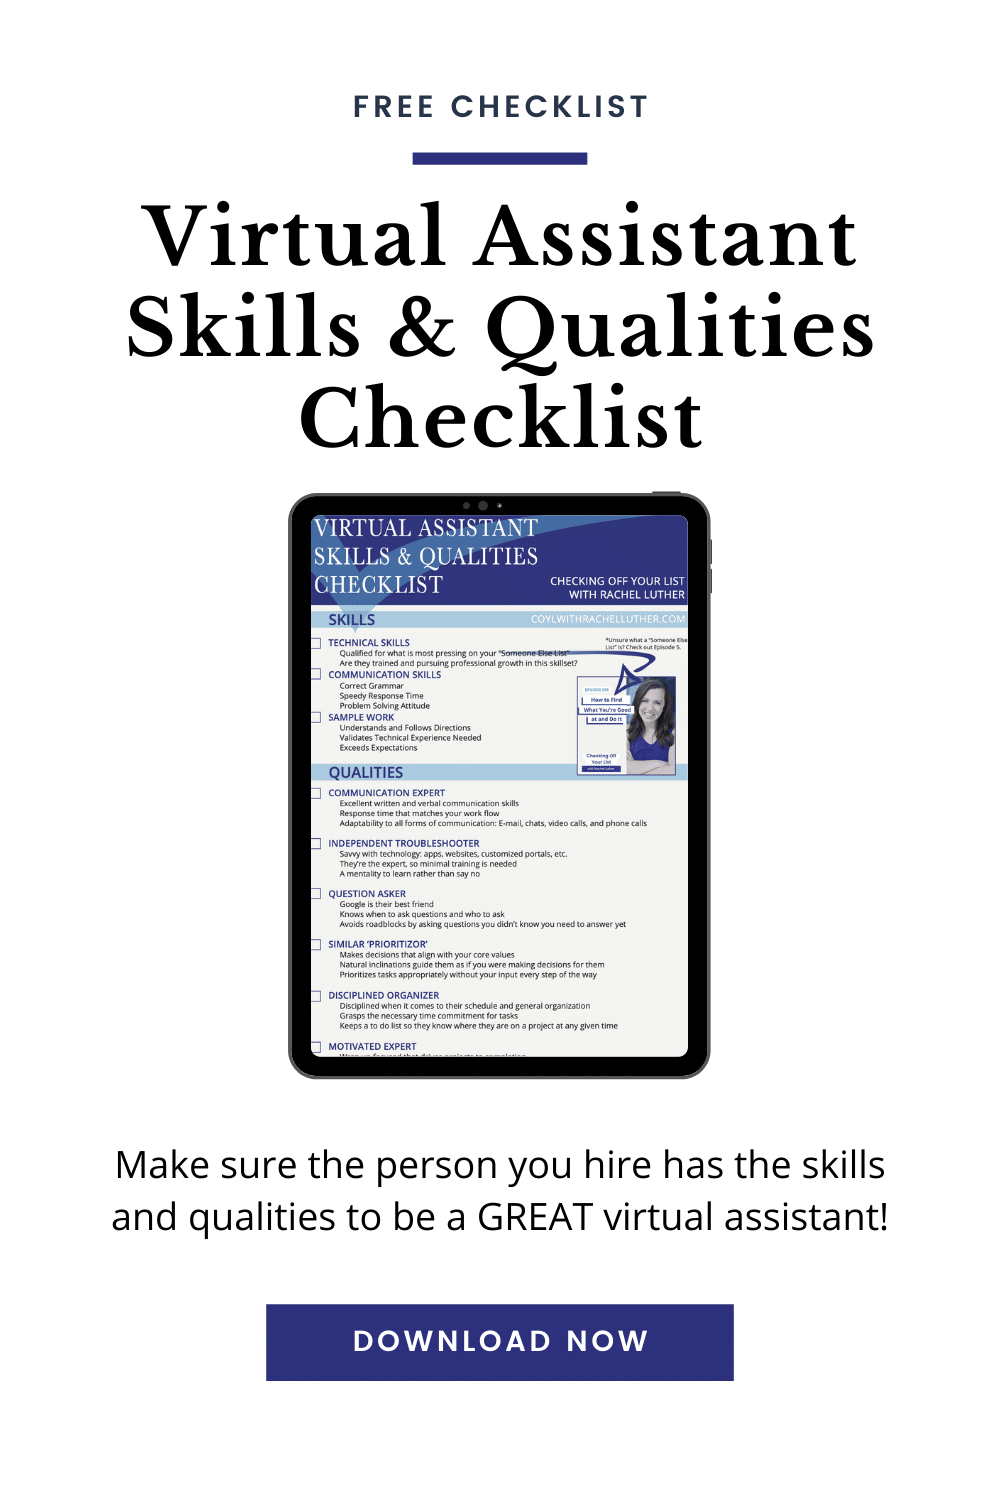 virtual assistant skills and qualities checklist